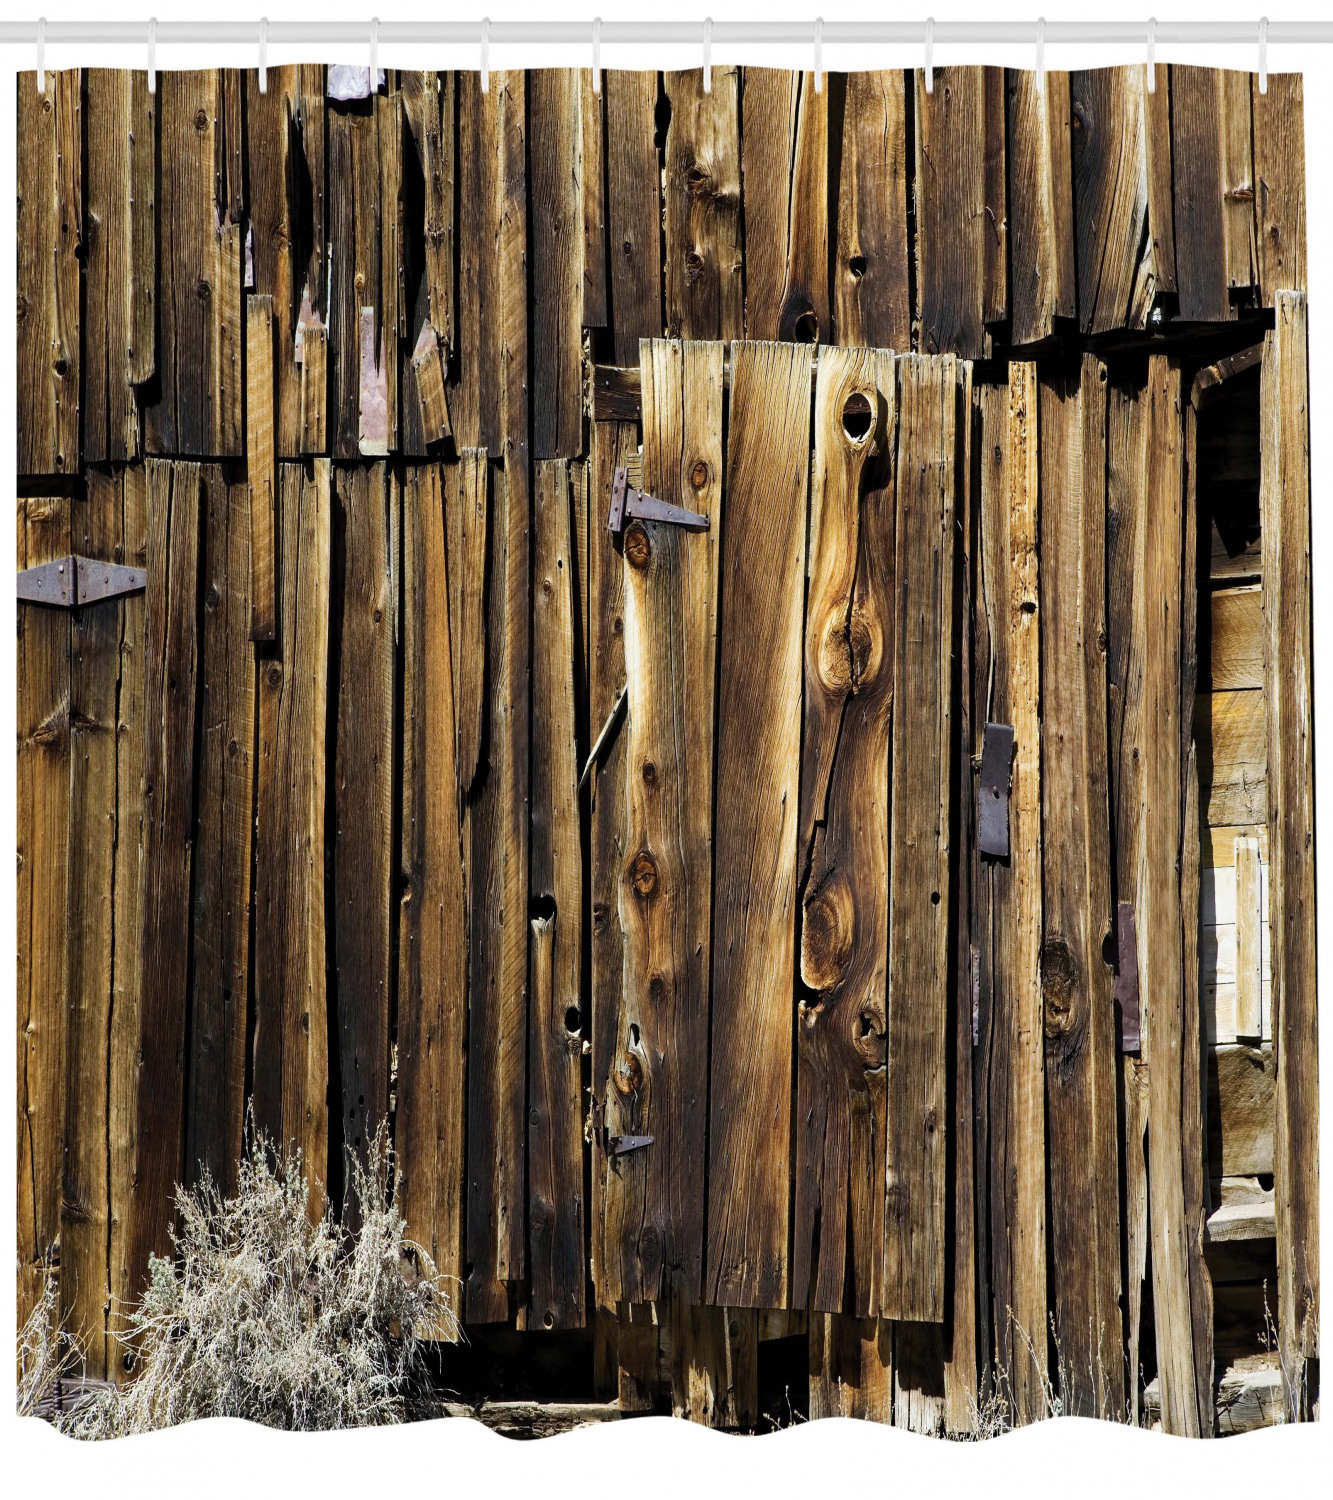 Rustic Shower Curtain Oak Barn Siding Door Cracked Rusted Hinges Dated Timber Mansion Farmland Nobody Design Fabric Bathroom Set With Hooks Brown